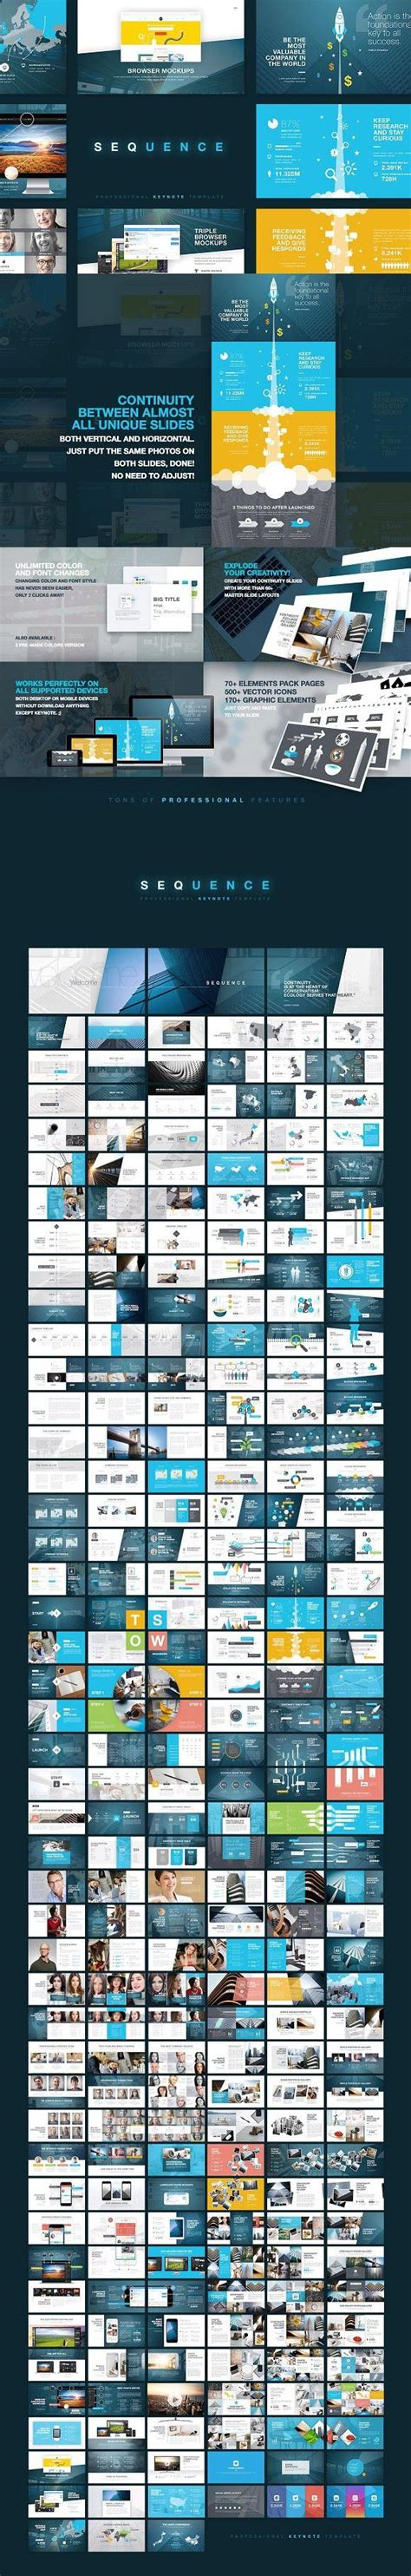 1000 ideas about calendar templates on pinterest